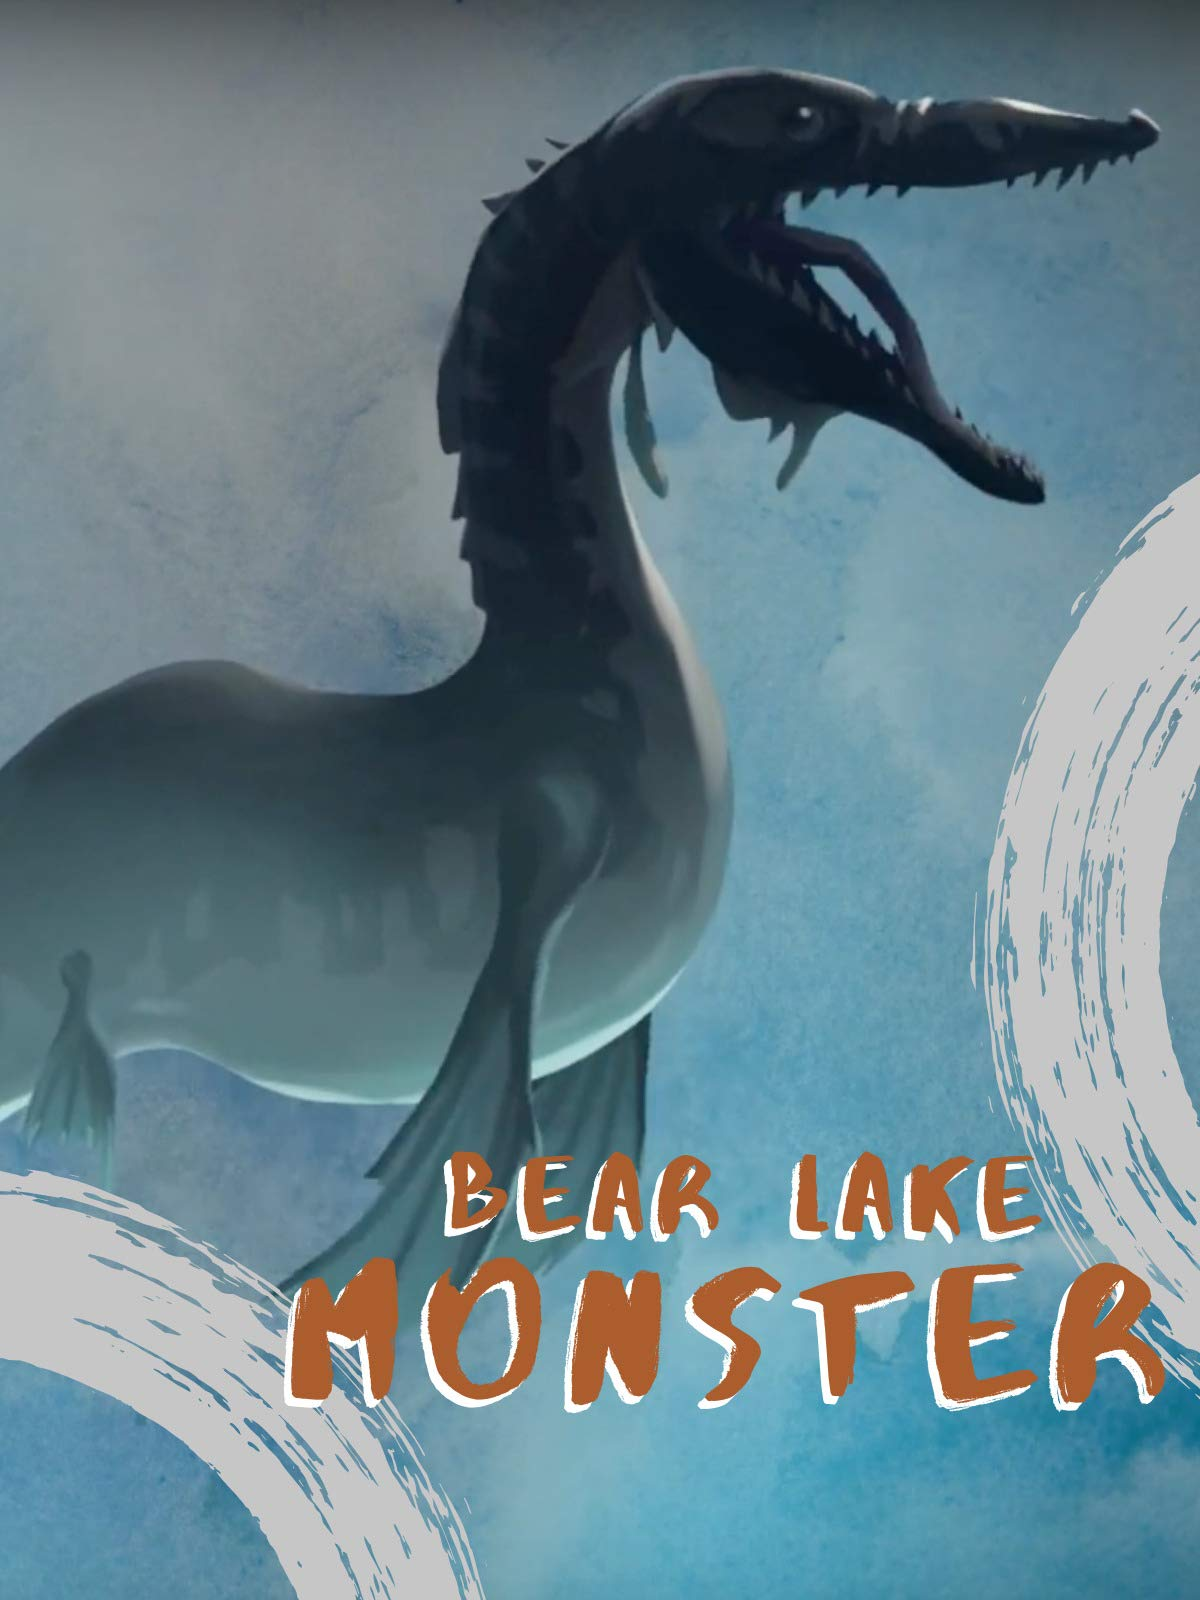 In Search of the Bear Lake Monster